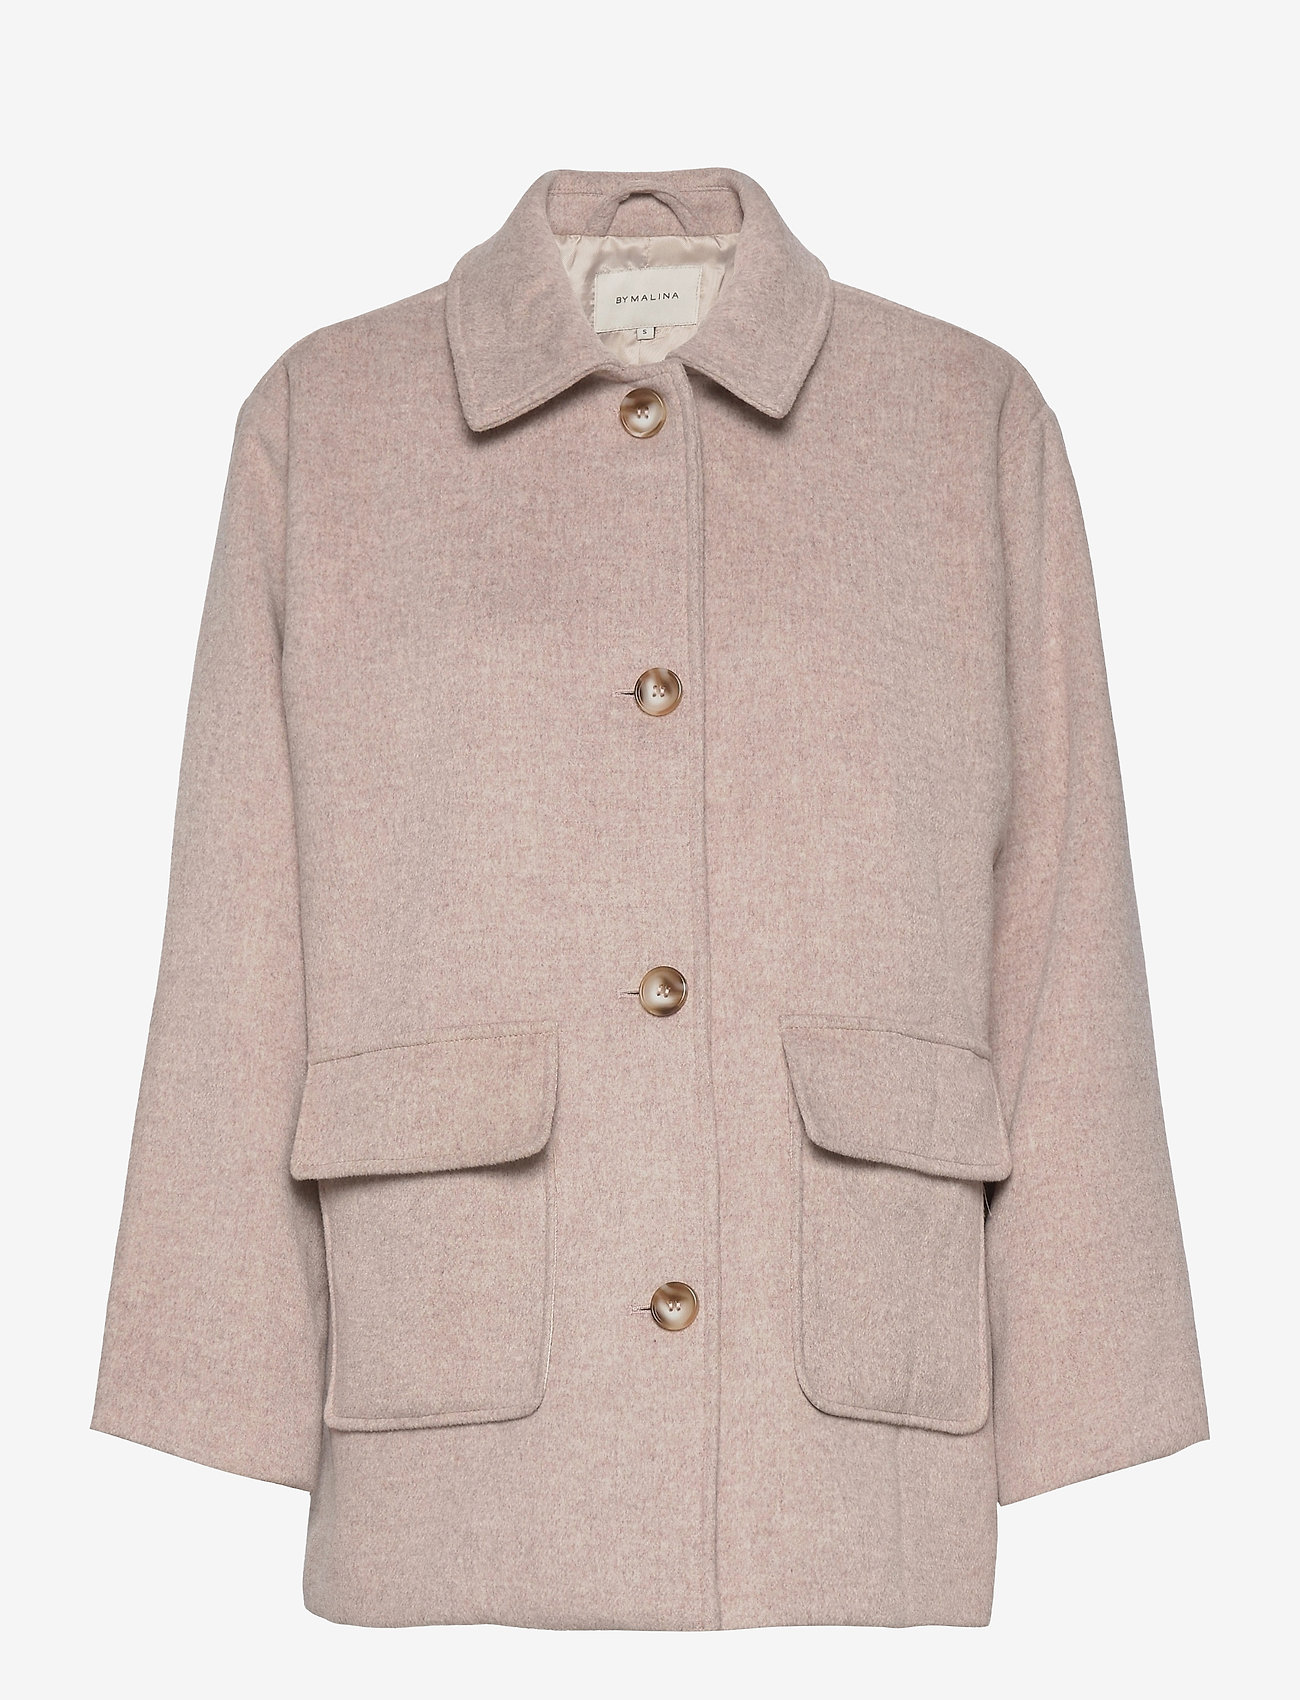 By Malina - Claire jacket - wool jackets - soft beige - 1